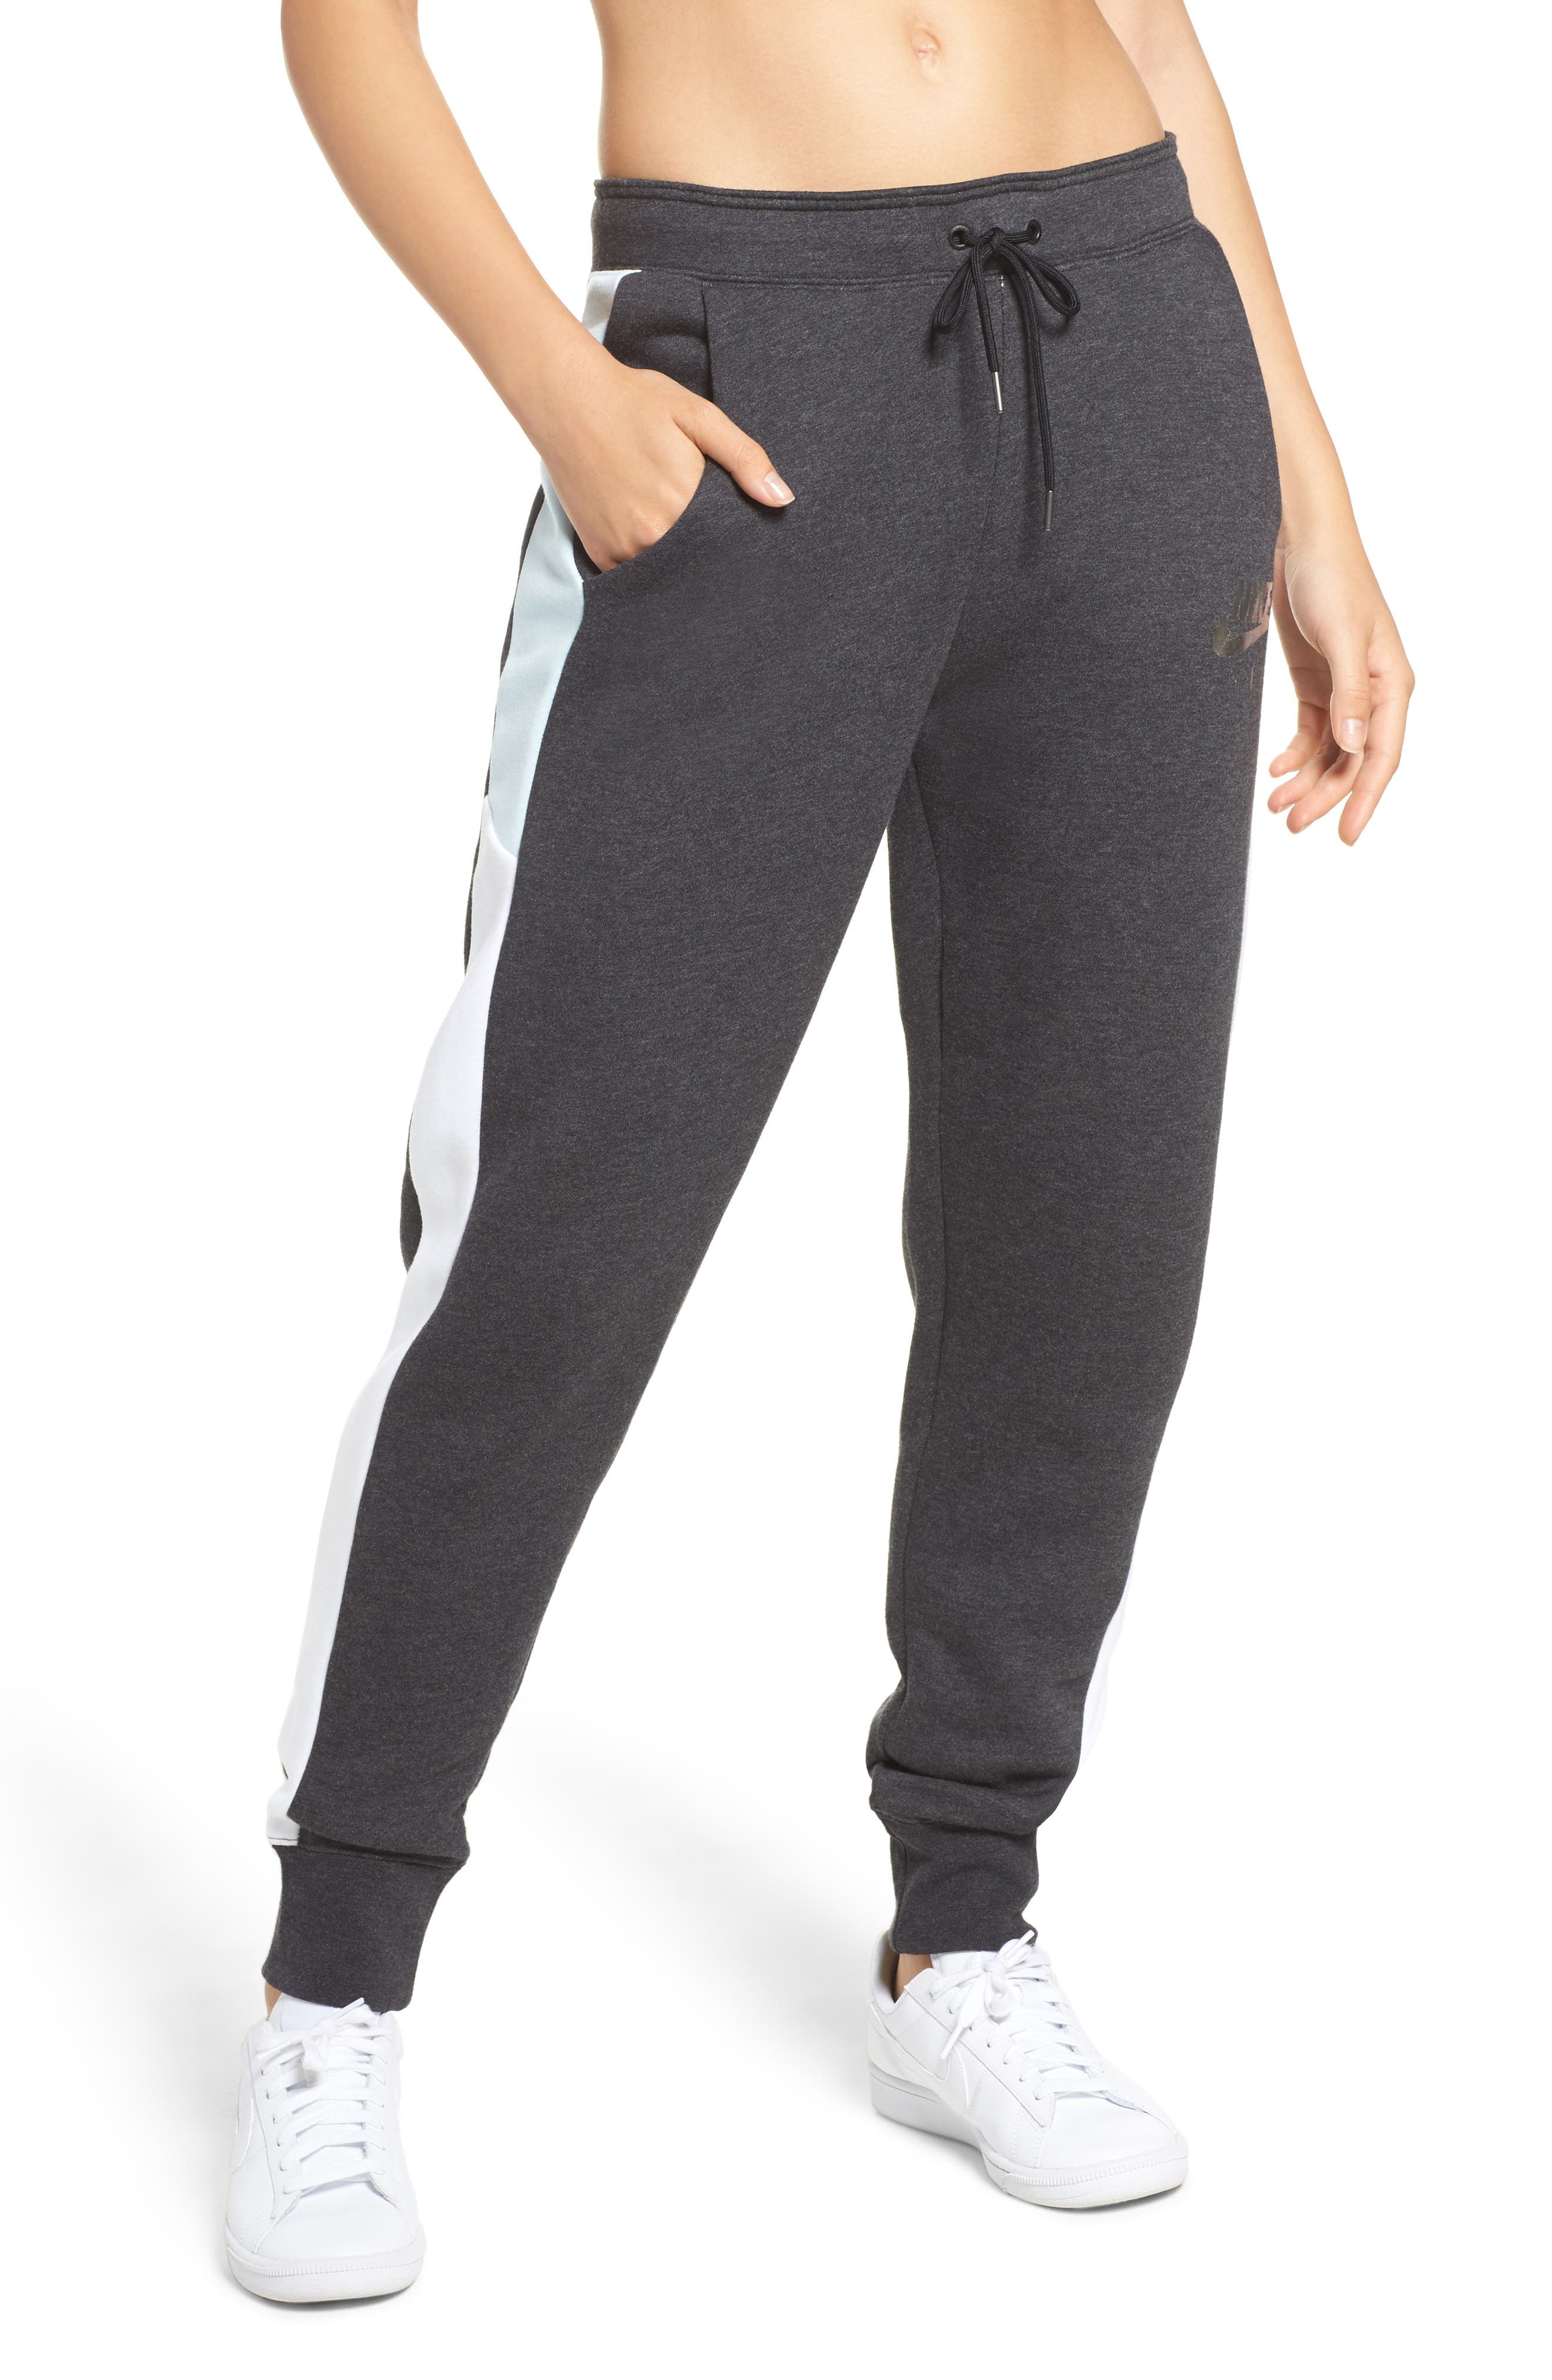 Rally Sweatpants,                         Main,                         color, Black Htr/ White/ Glacier Blue